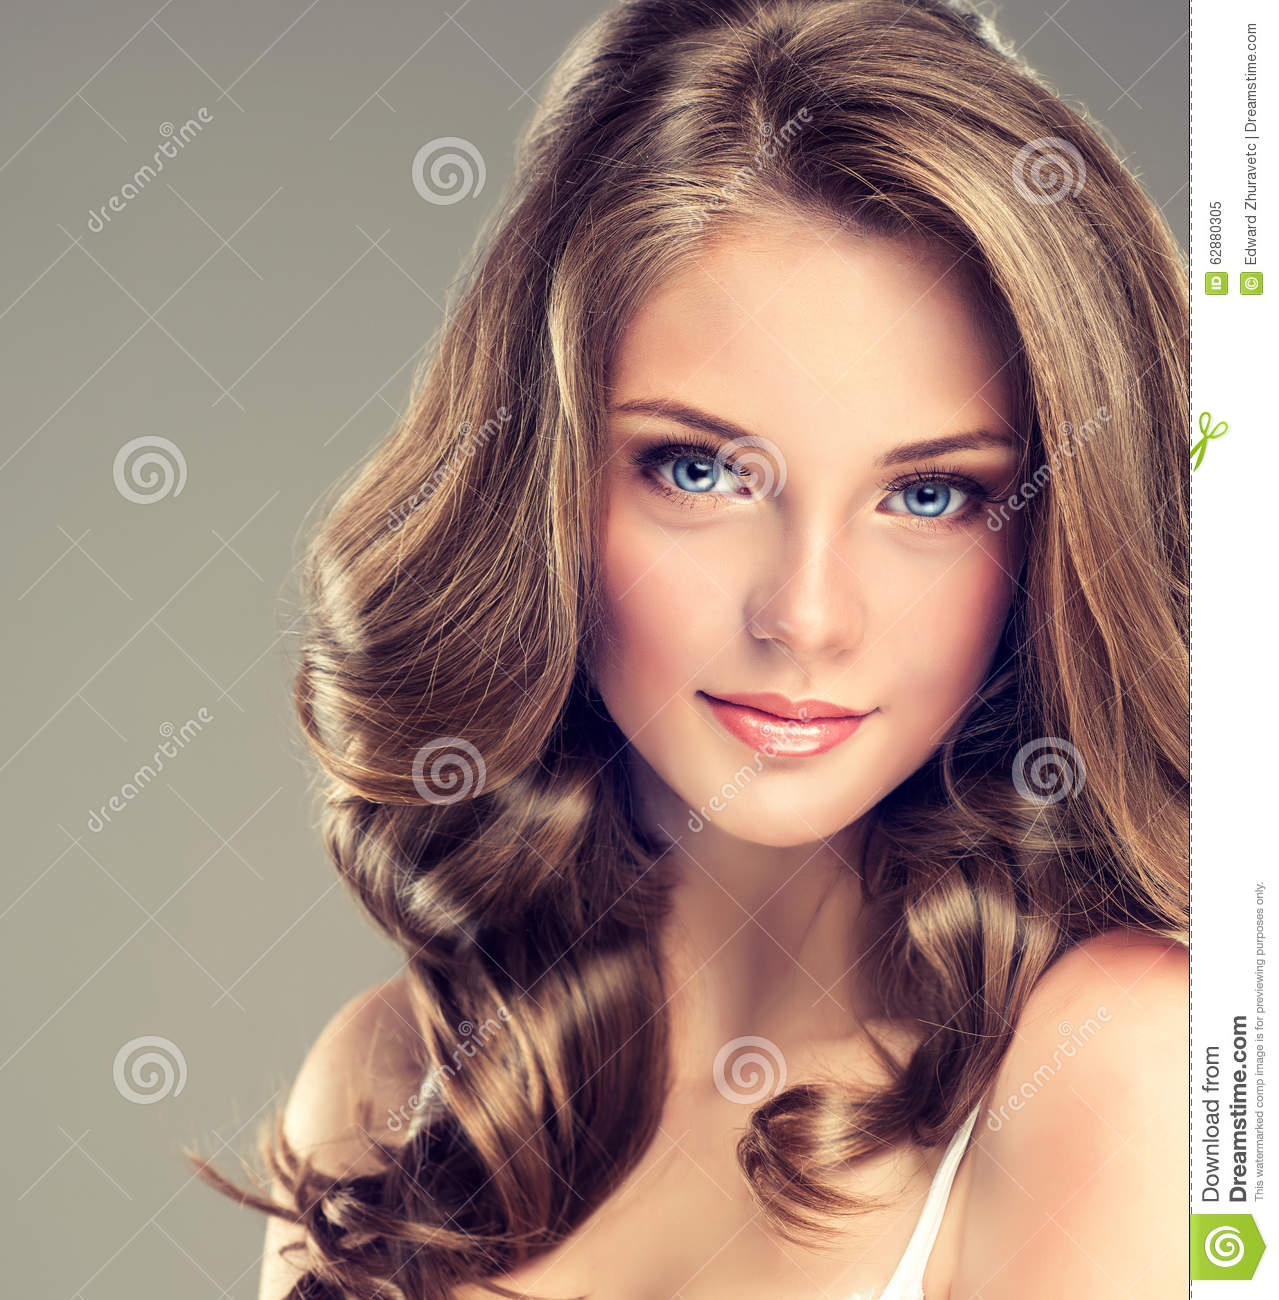 Nice And Tender Look Of Young Girl Stock Photo Image 62880305